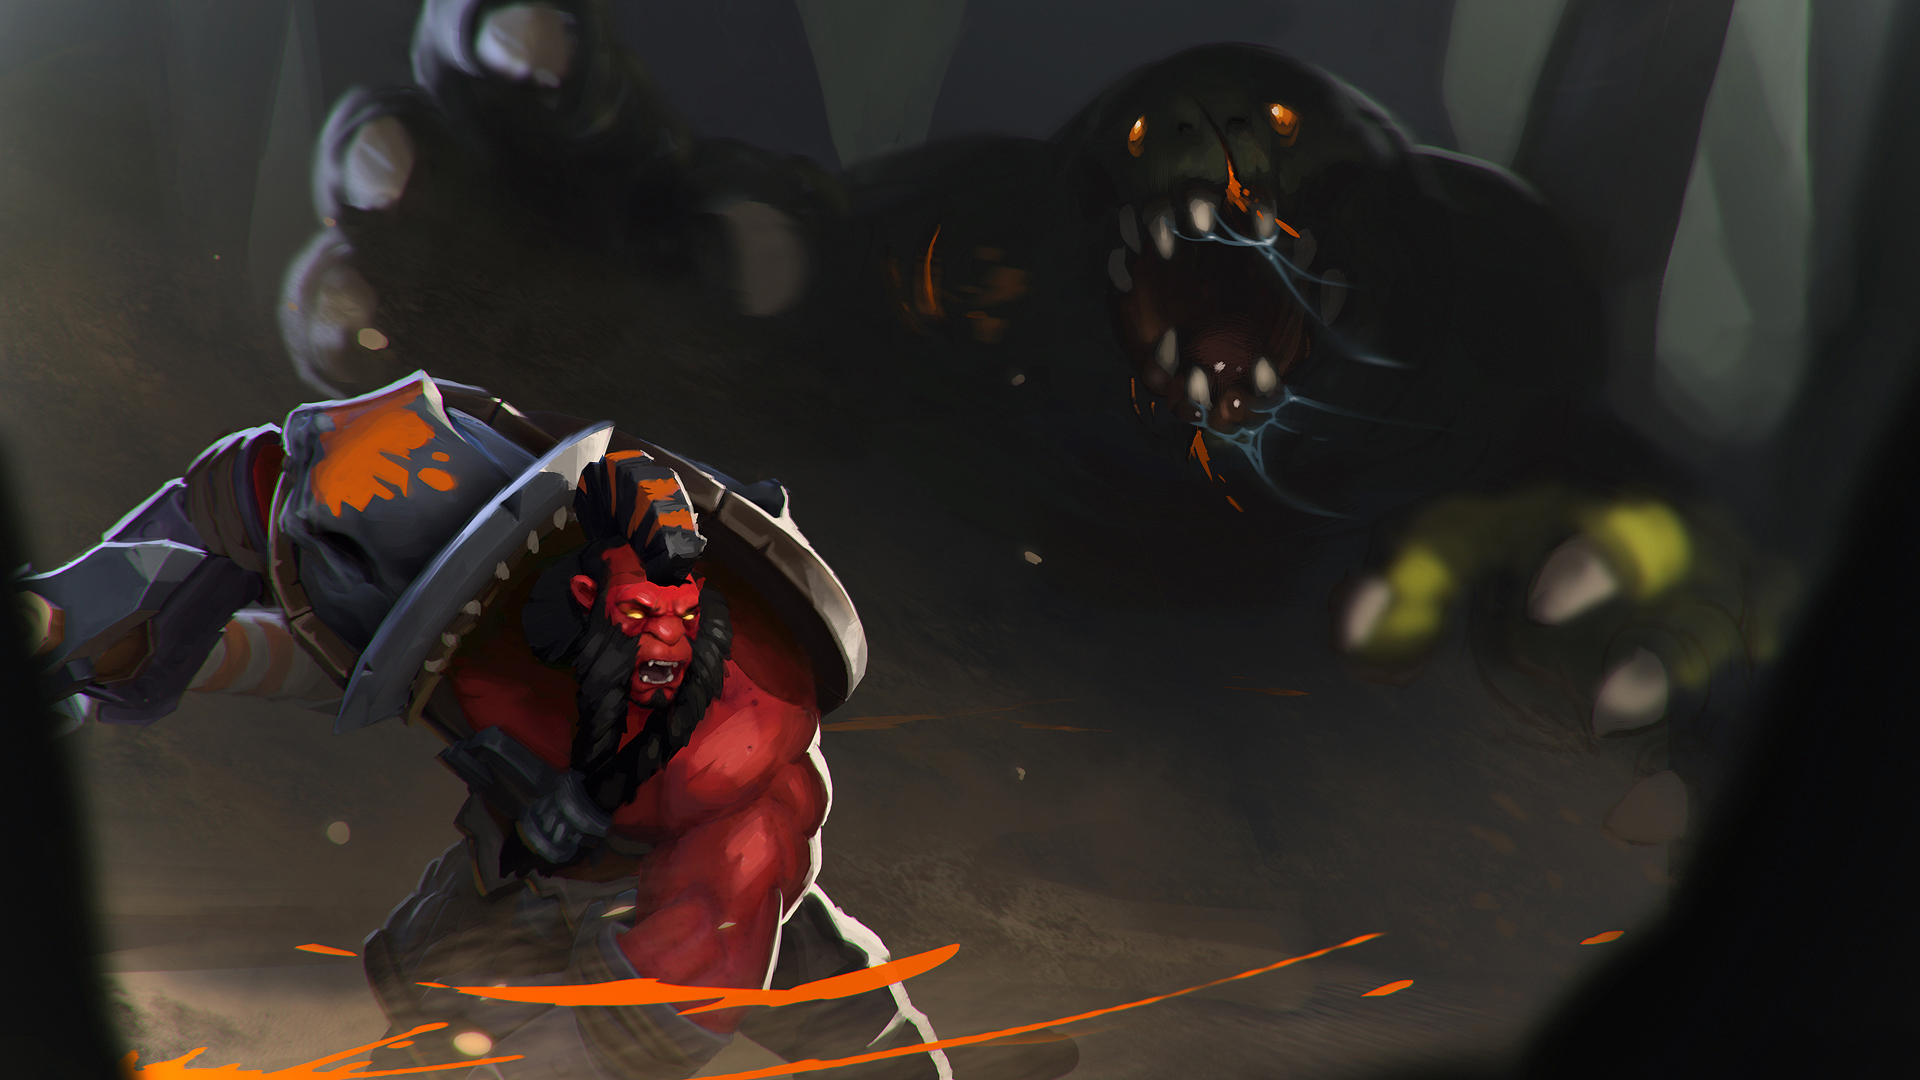 Axe Dota 2 Fight Wallp...